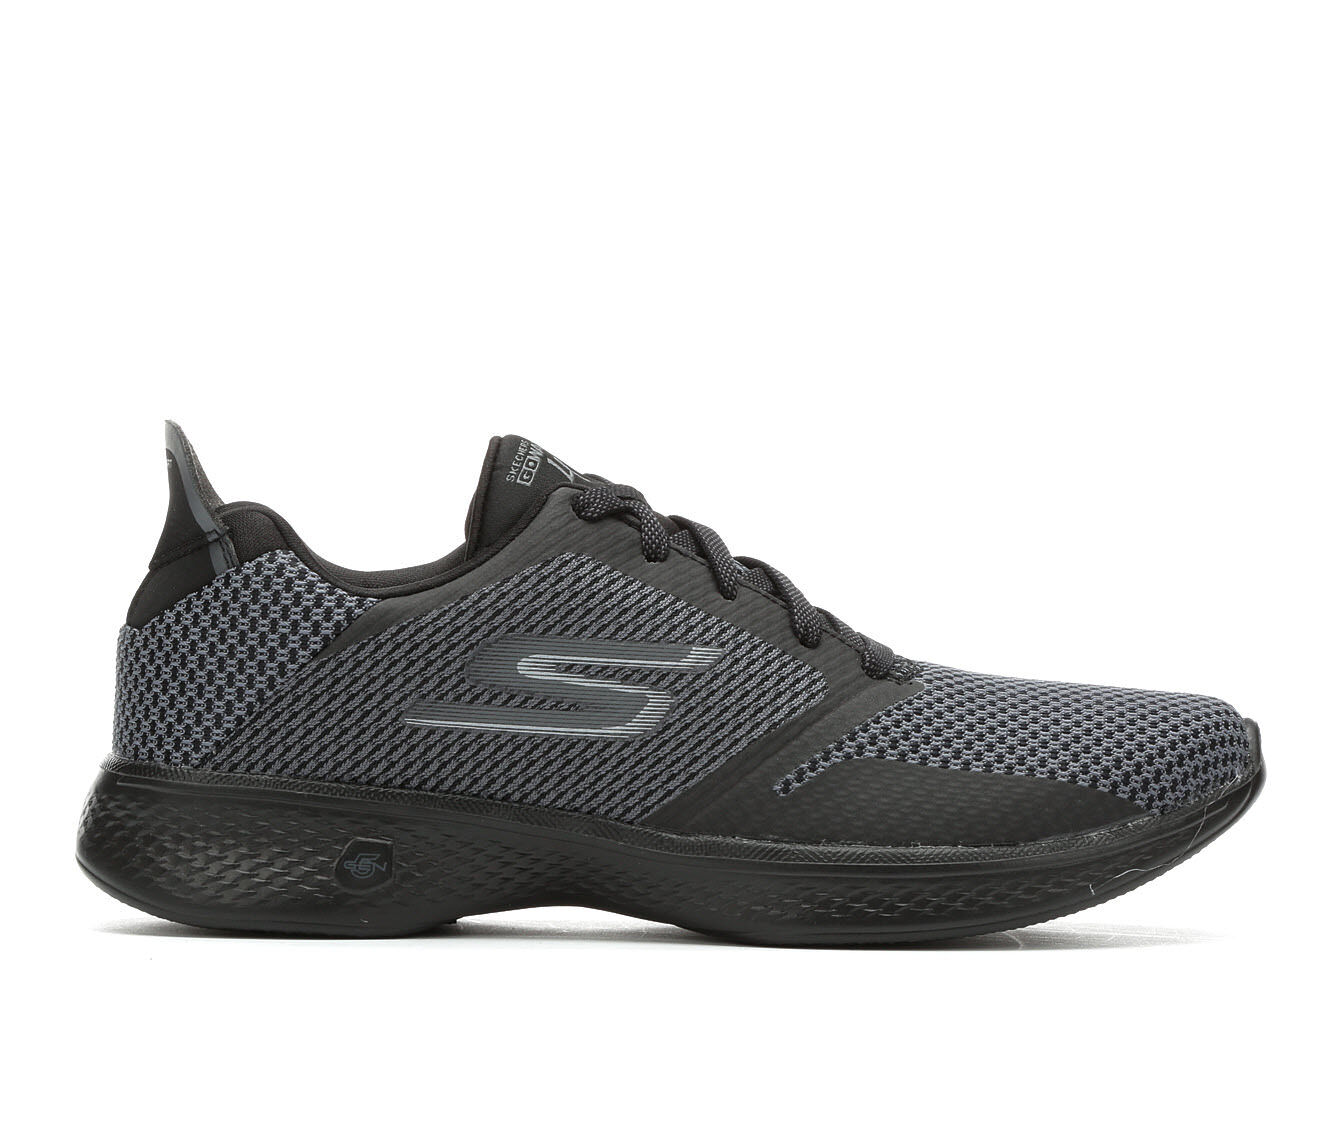 Skechers Go Walk 4 Sneakers free shipping good selling clearance how much exclusive sale online finishline sale 2014 unisex XH83dc33H